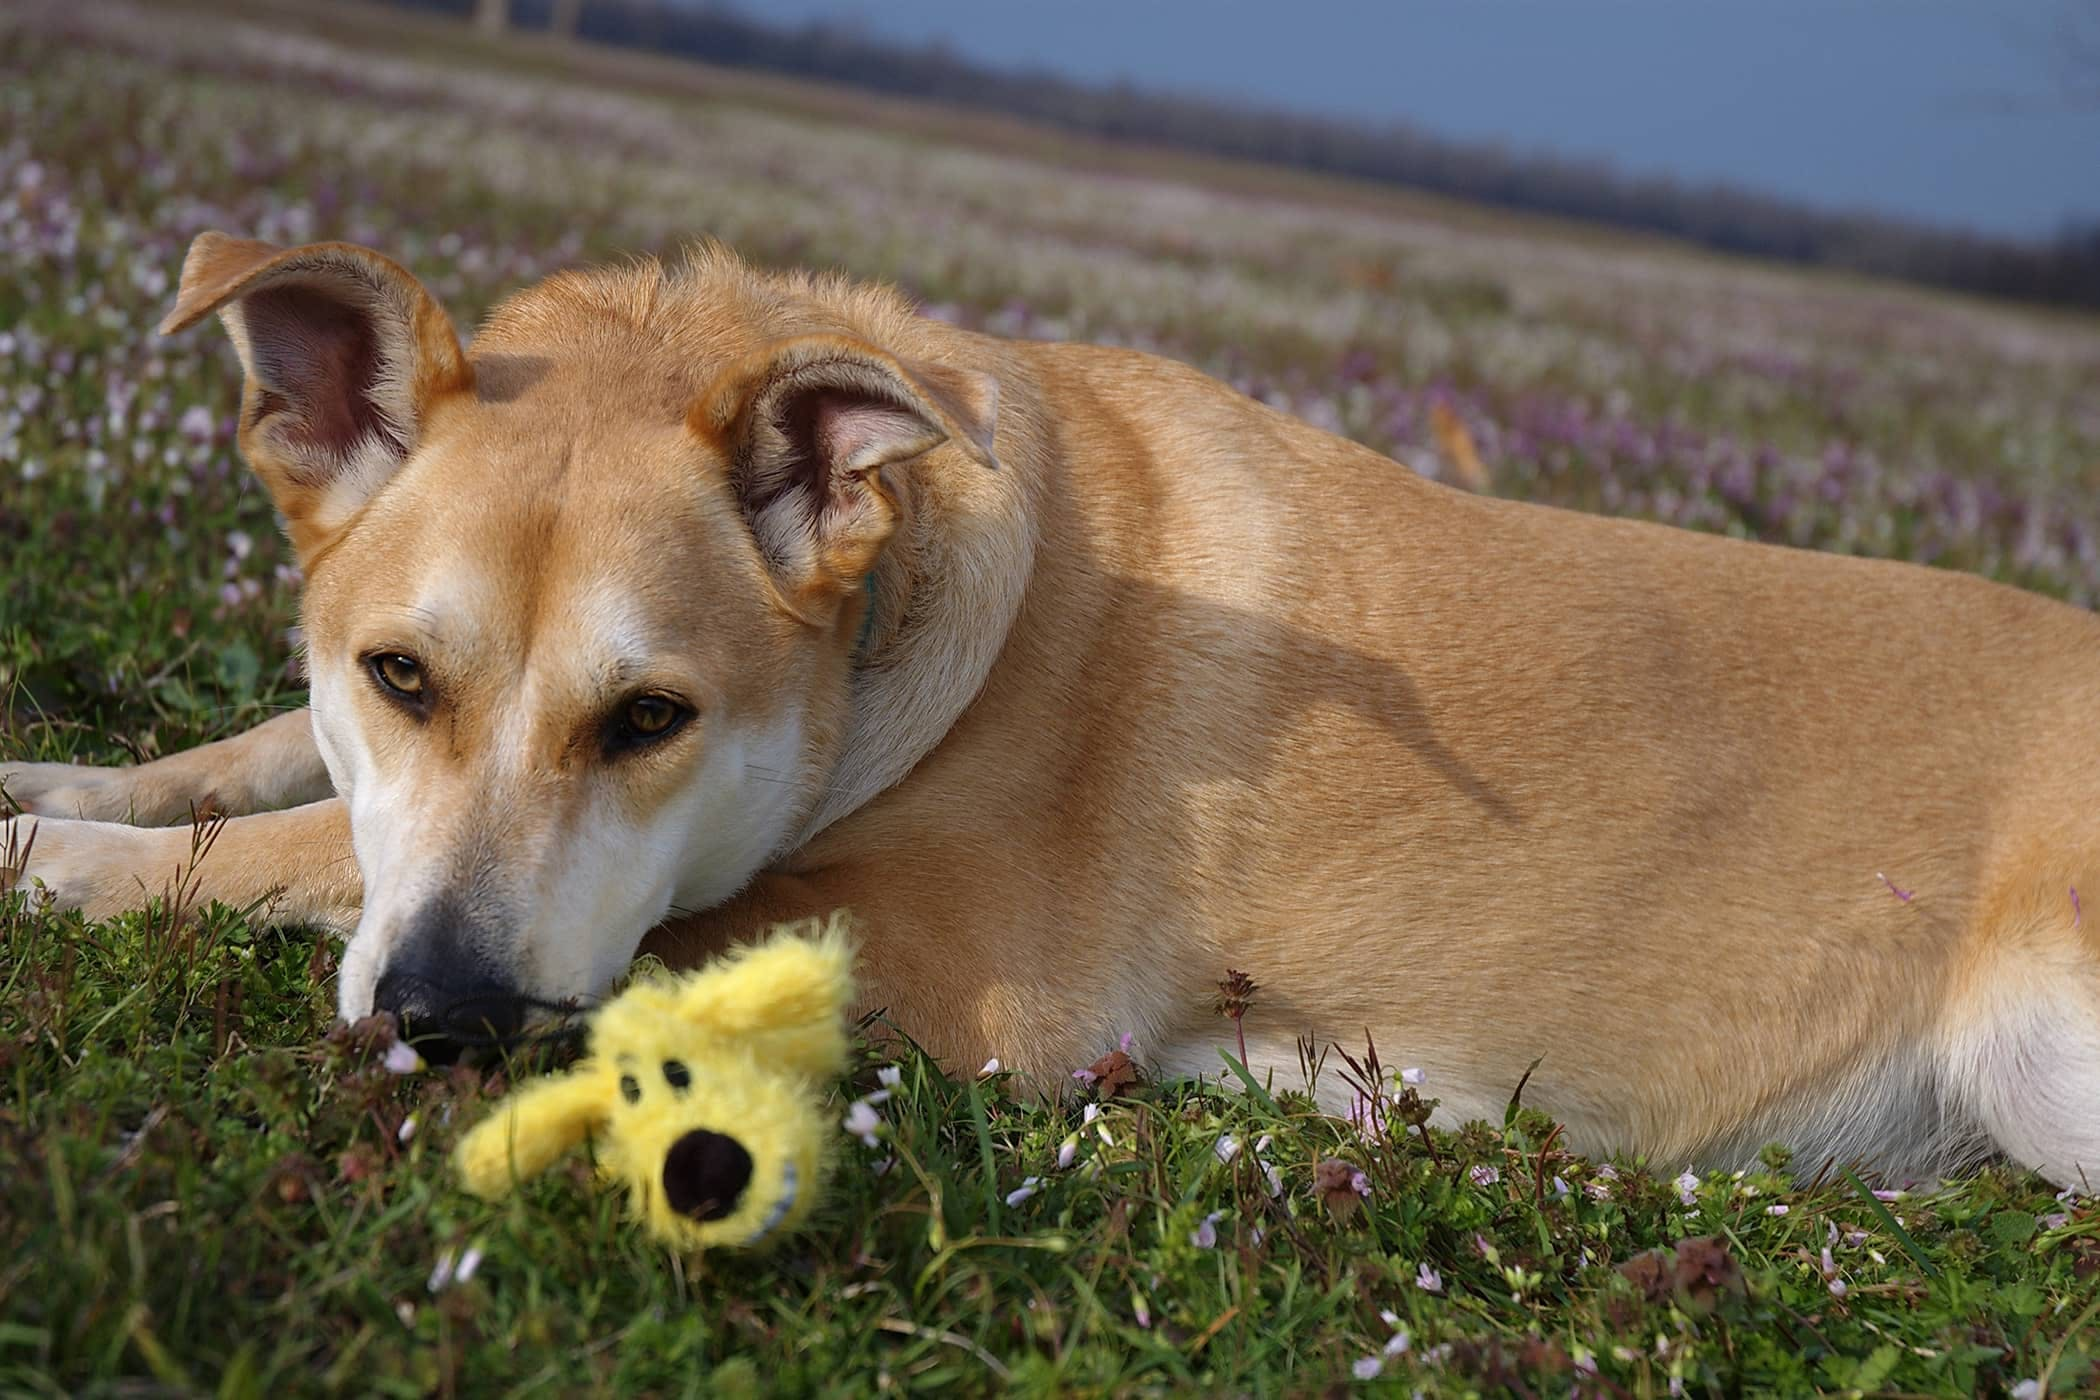 Exercise Intolerance in Dogs - Symptoms, Causes, Diagnosis